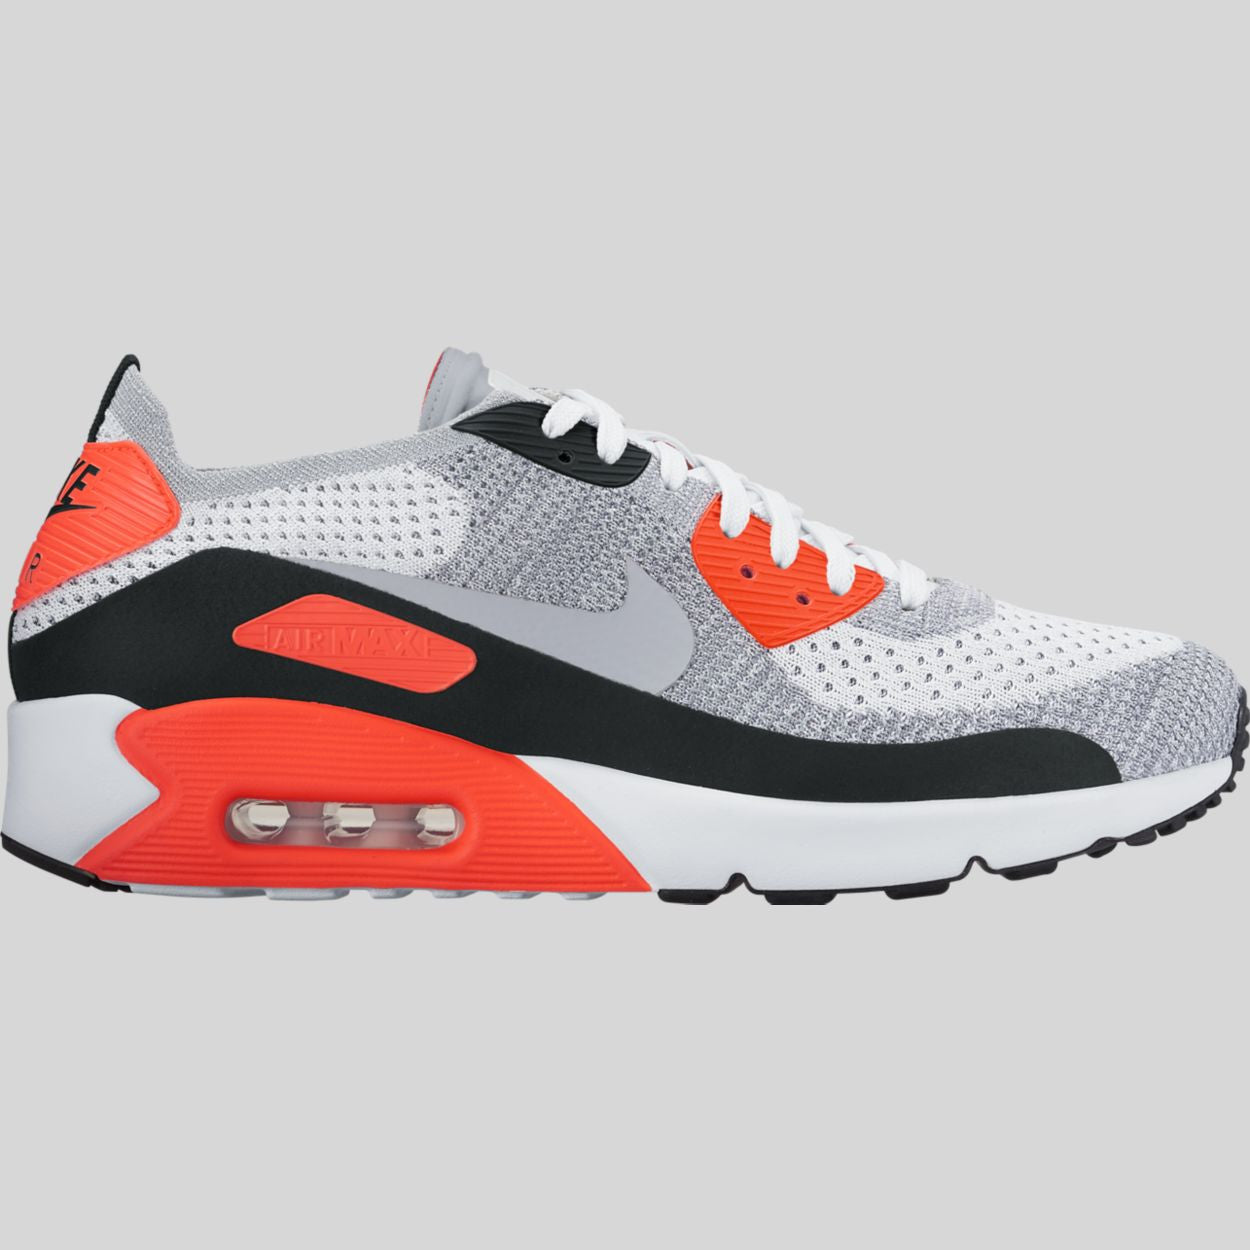 new product 6db67 c2966 Nike Air Max 90 Ultra 2.0 Flyknit Infrared